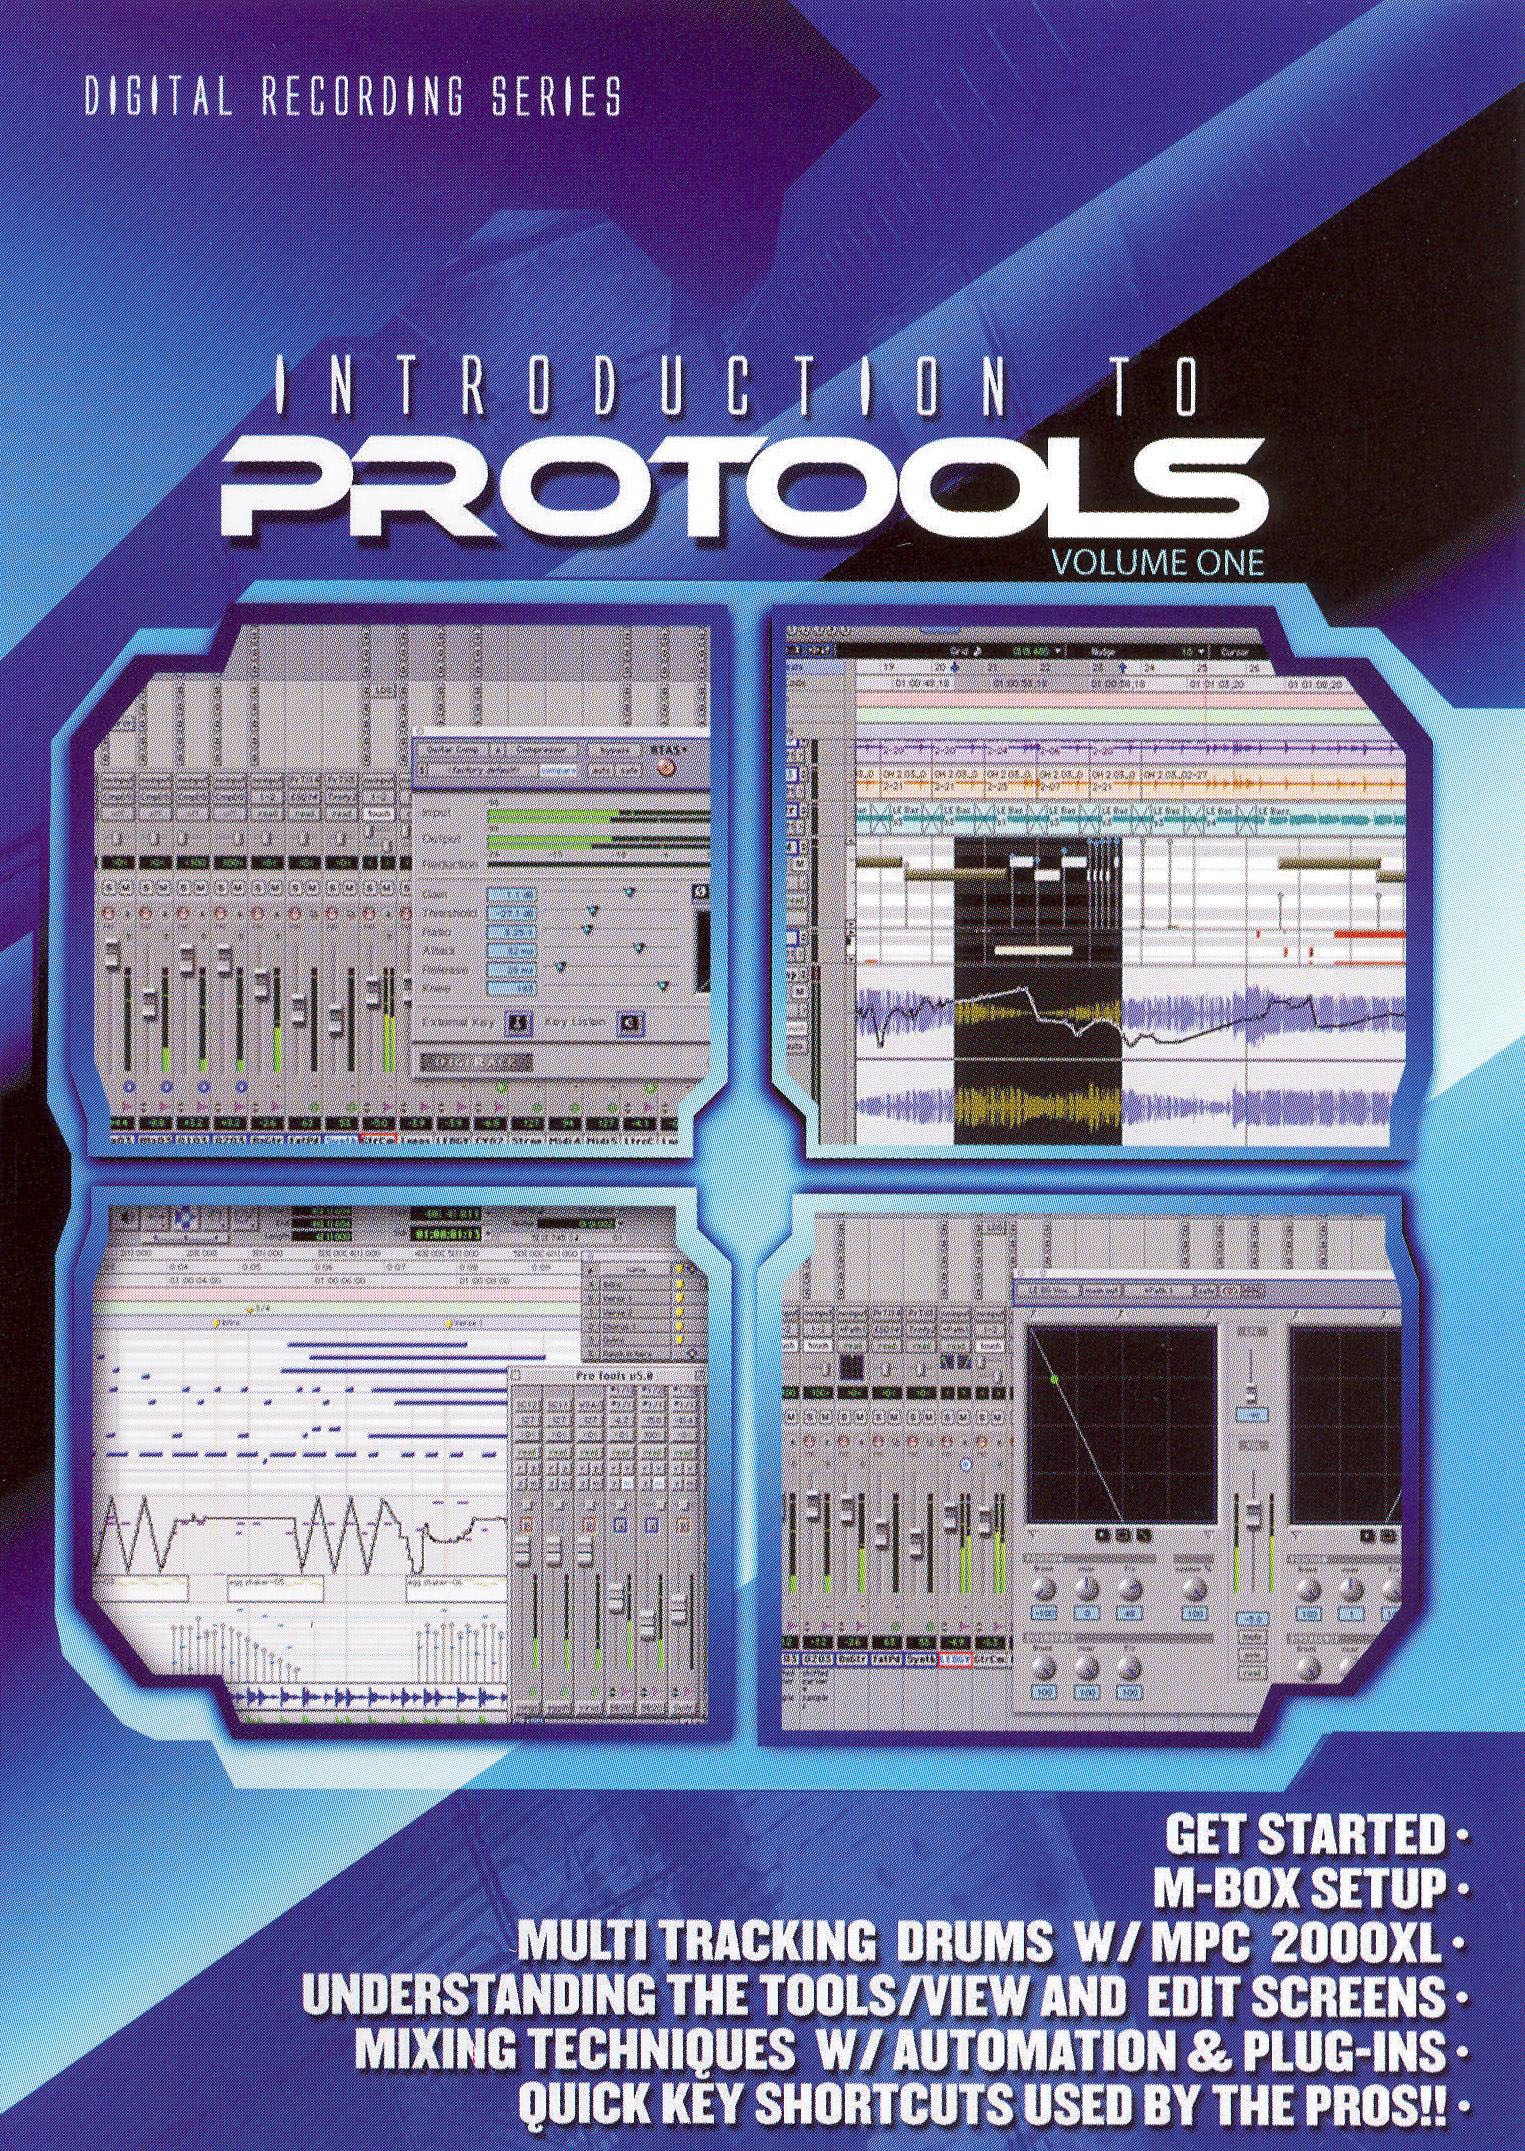 The Basics of Digital Home Recording: Introduction to Protocols, Vol. 1